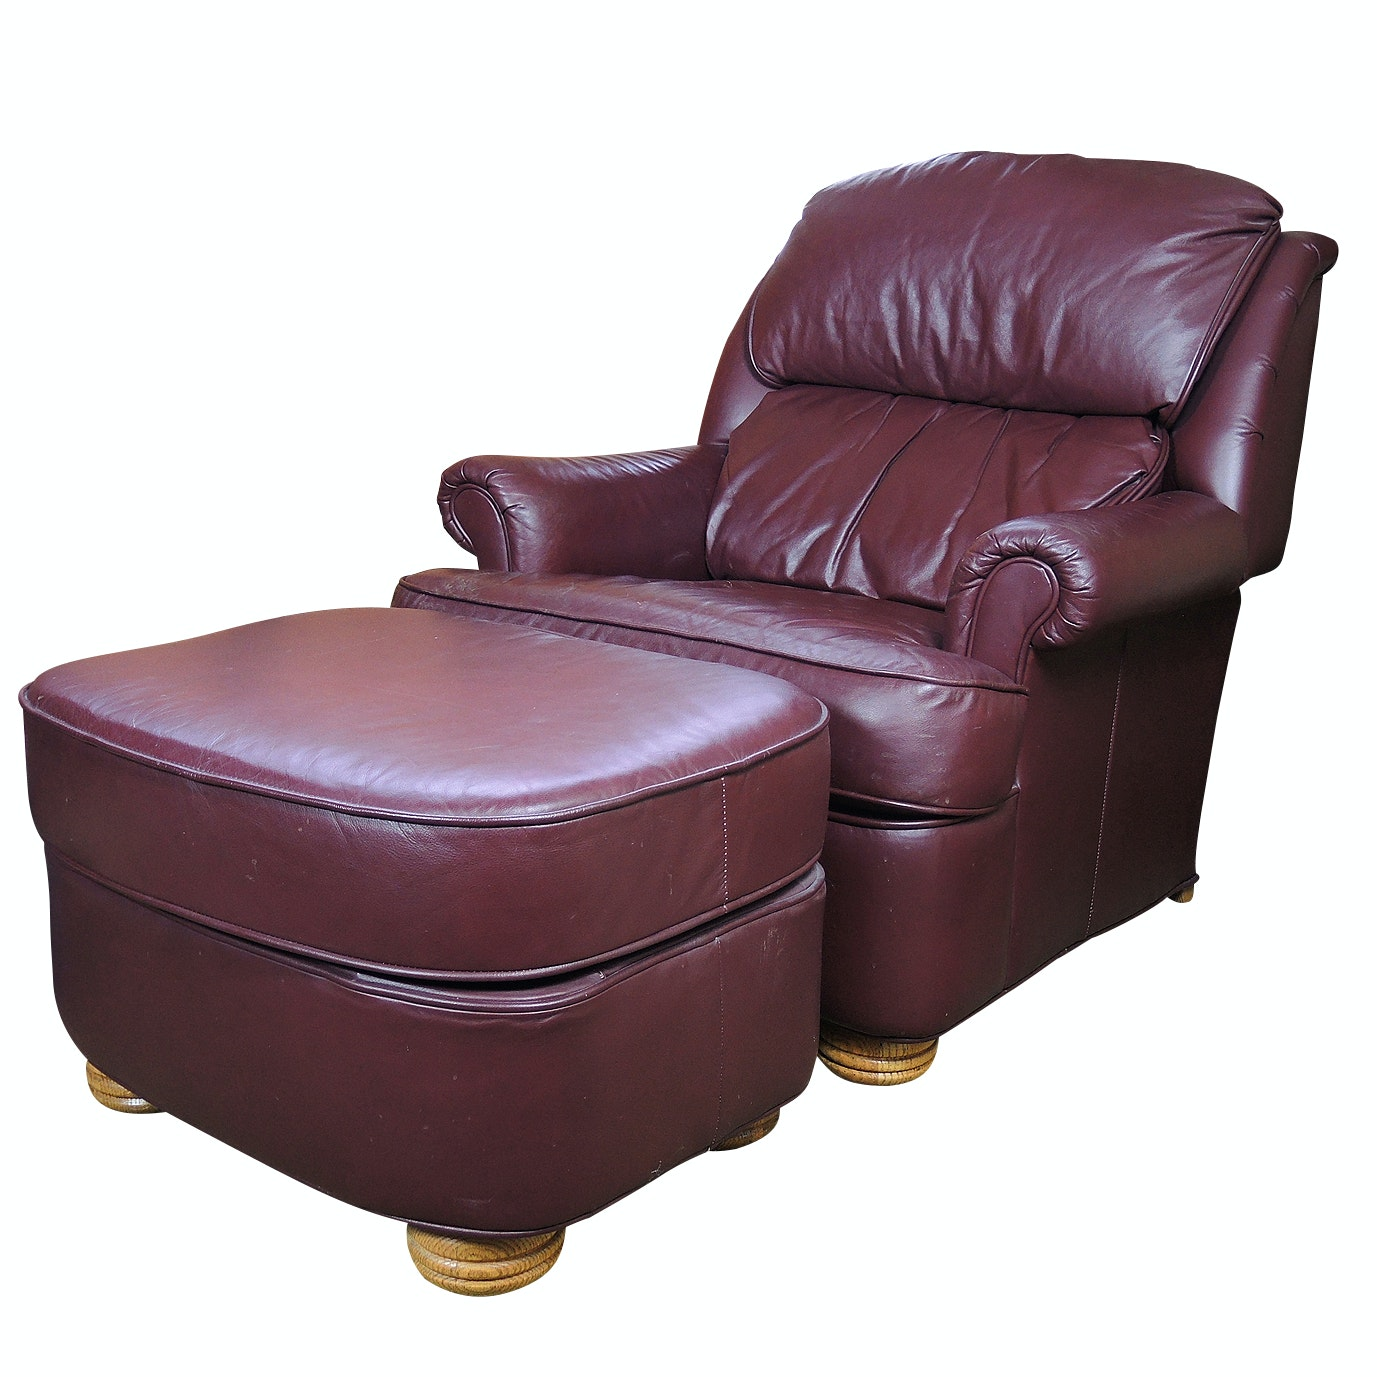 Contemporary Leather Barca Lounger Reclining Armchair and Coordinating Ottoman